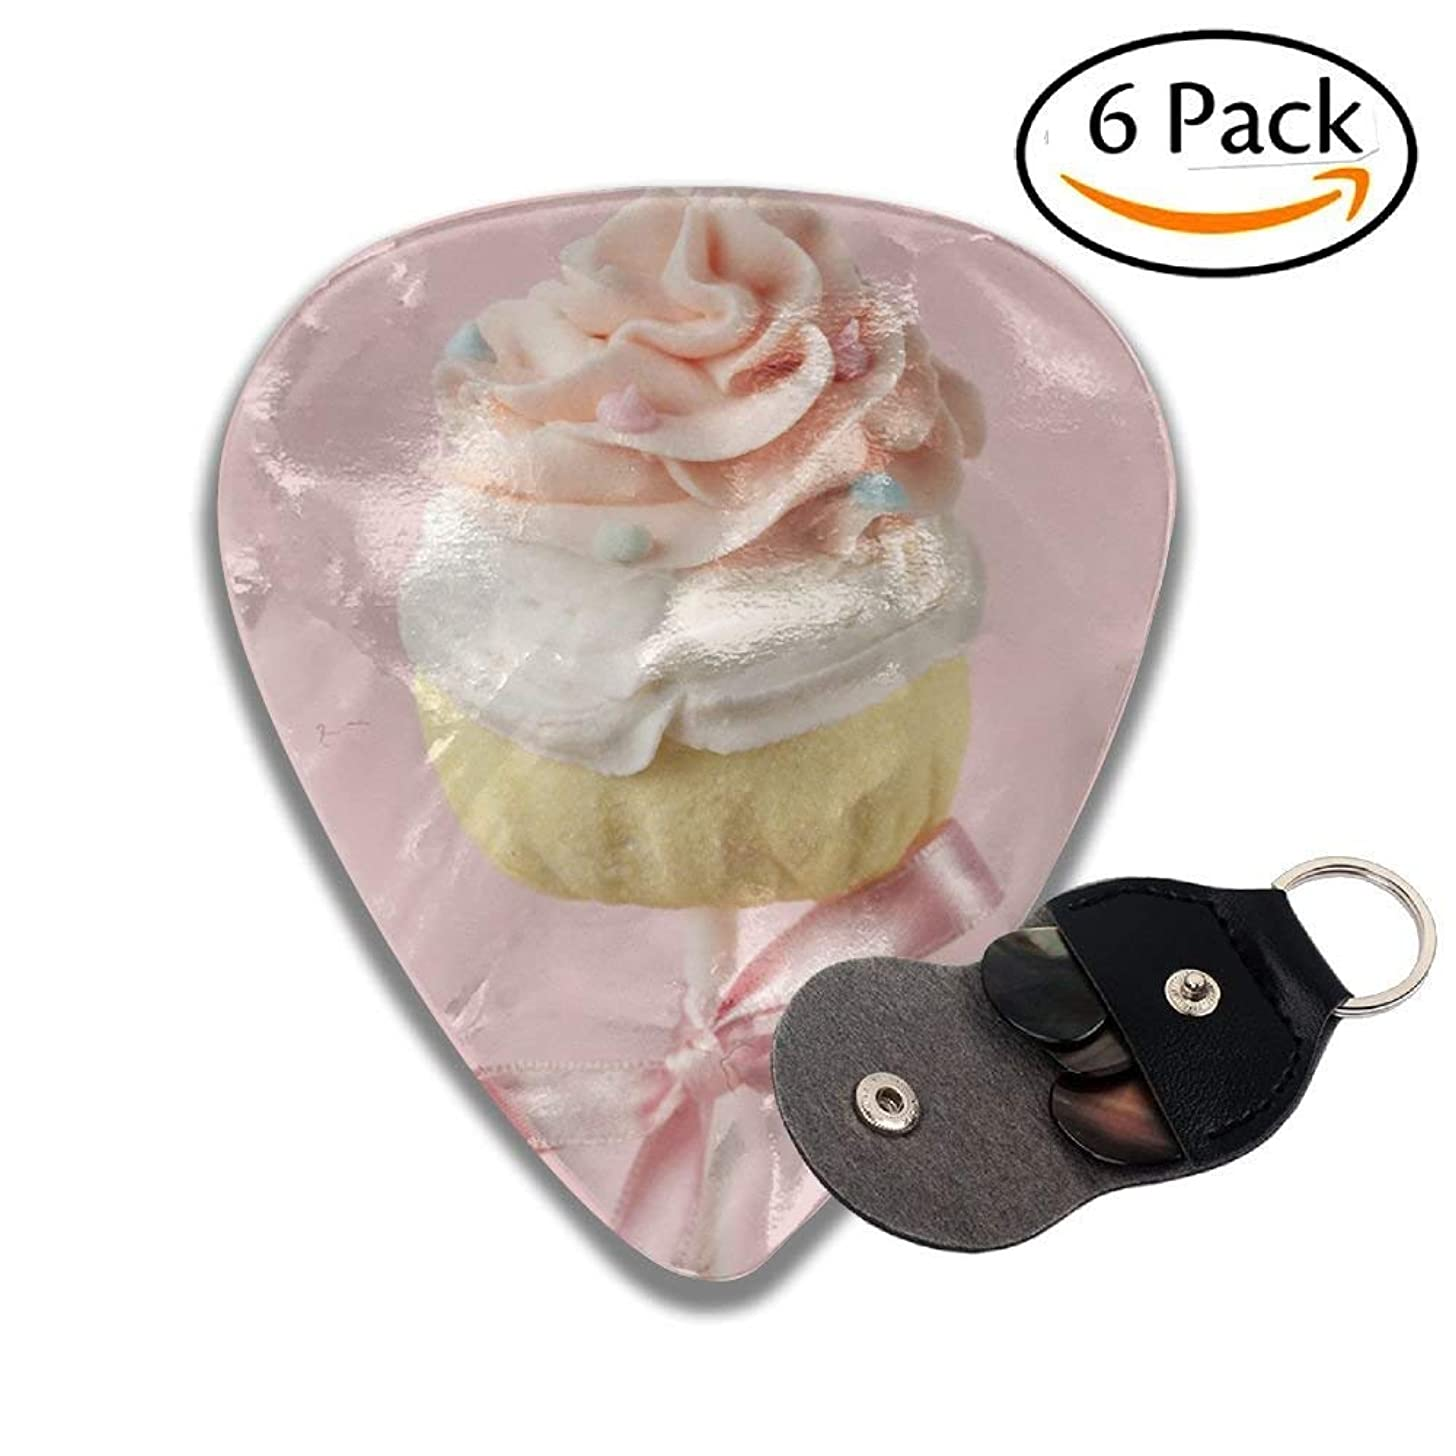 Colorful Cupcake Pops On Pink Stylish Celluloid Guitar Picks Plectrums For Guitar Bass .46mm 6 Pack